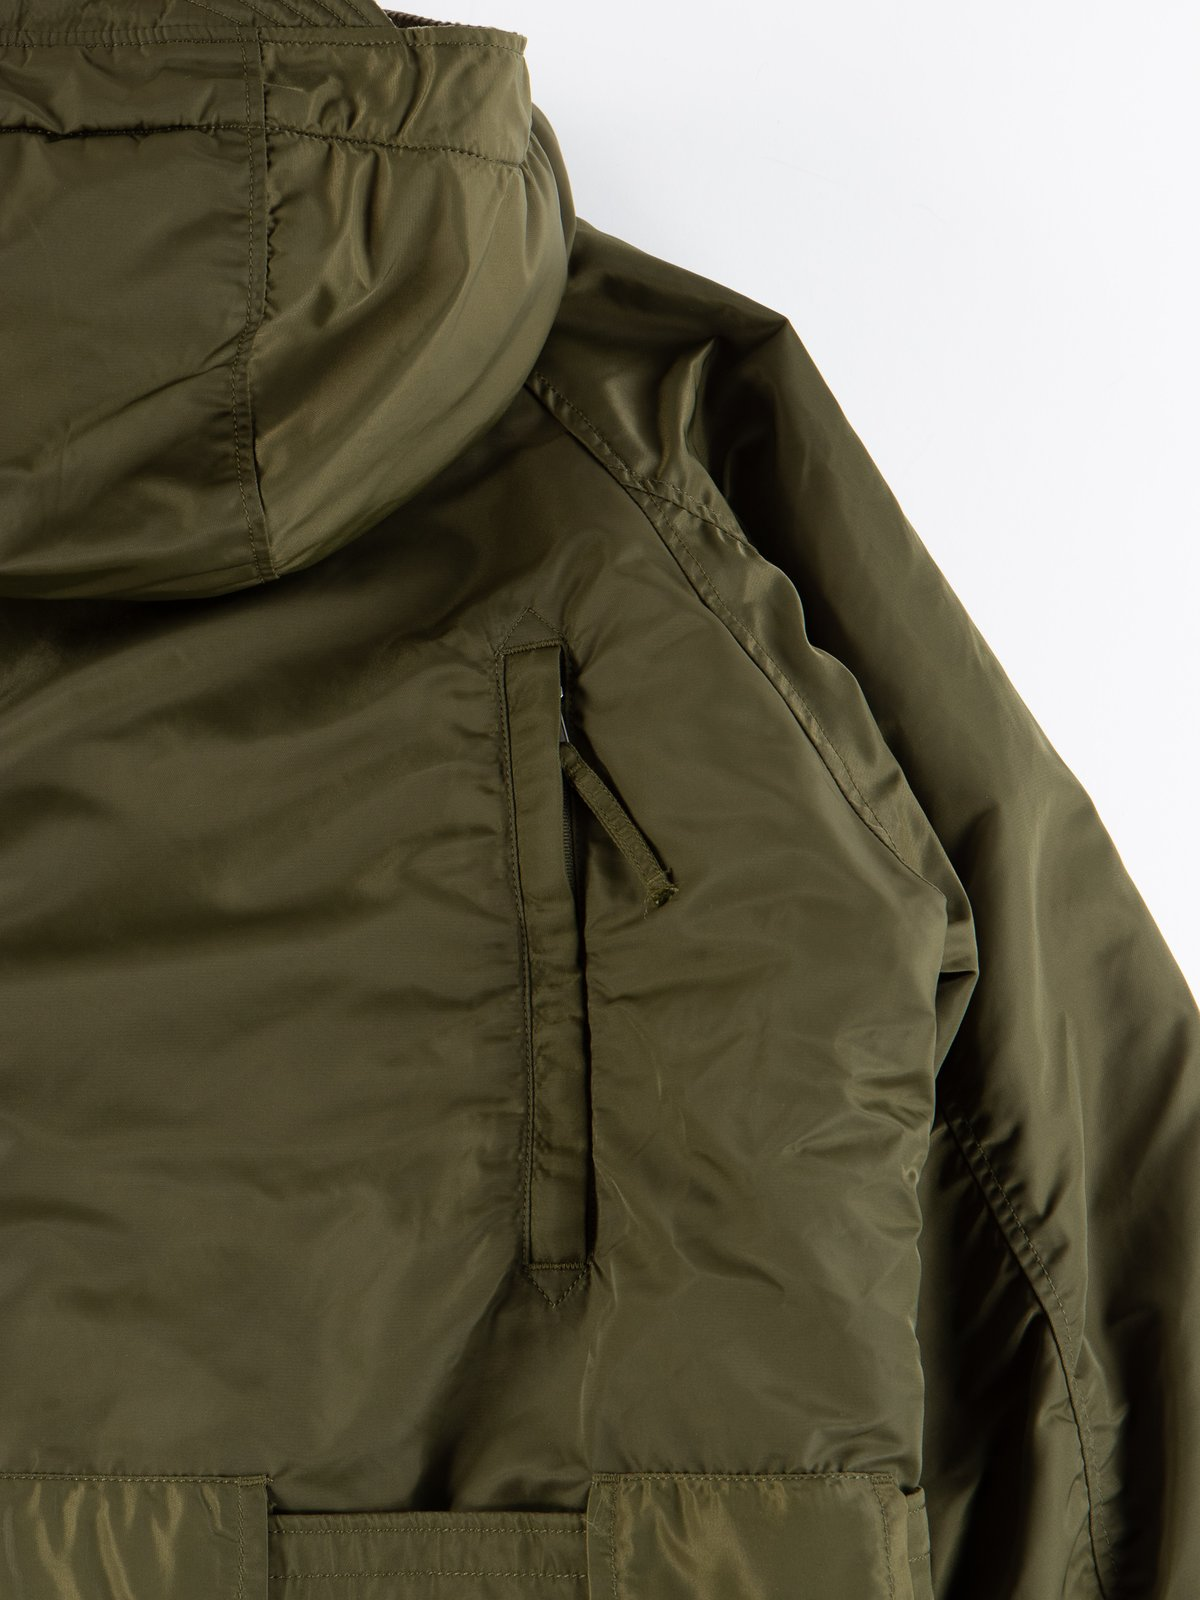 Olive Flight Satin Nylon Field Parka - Image 10